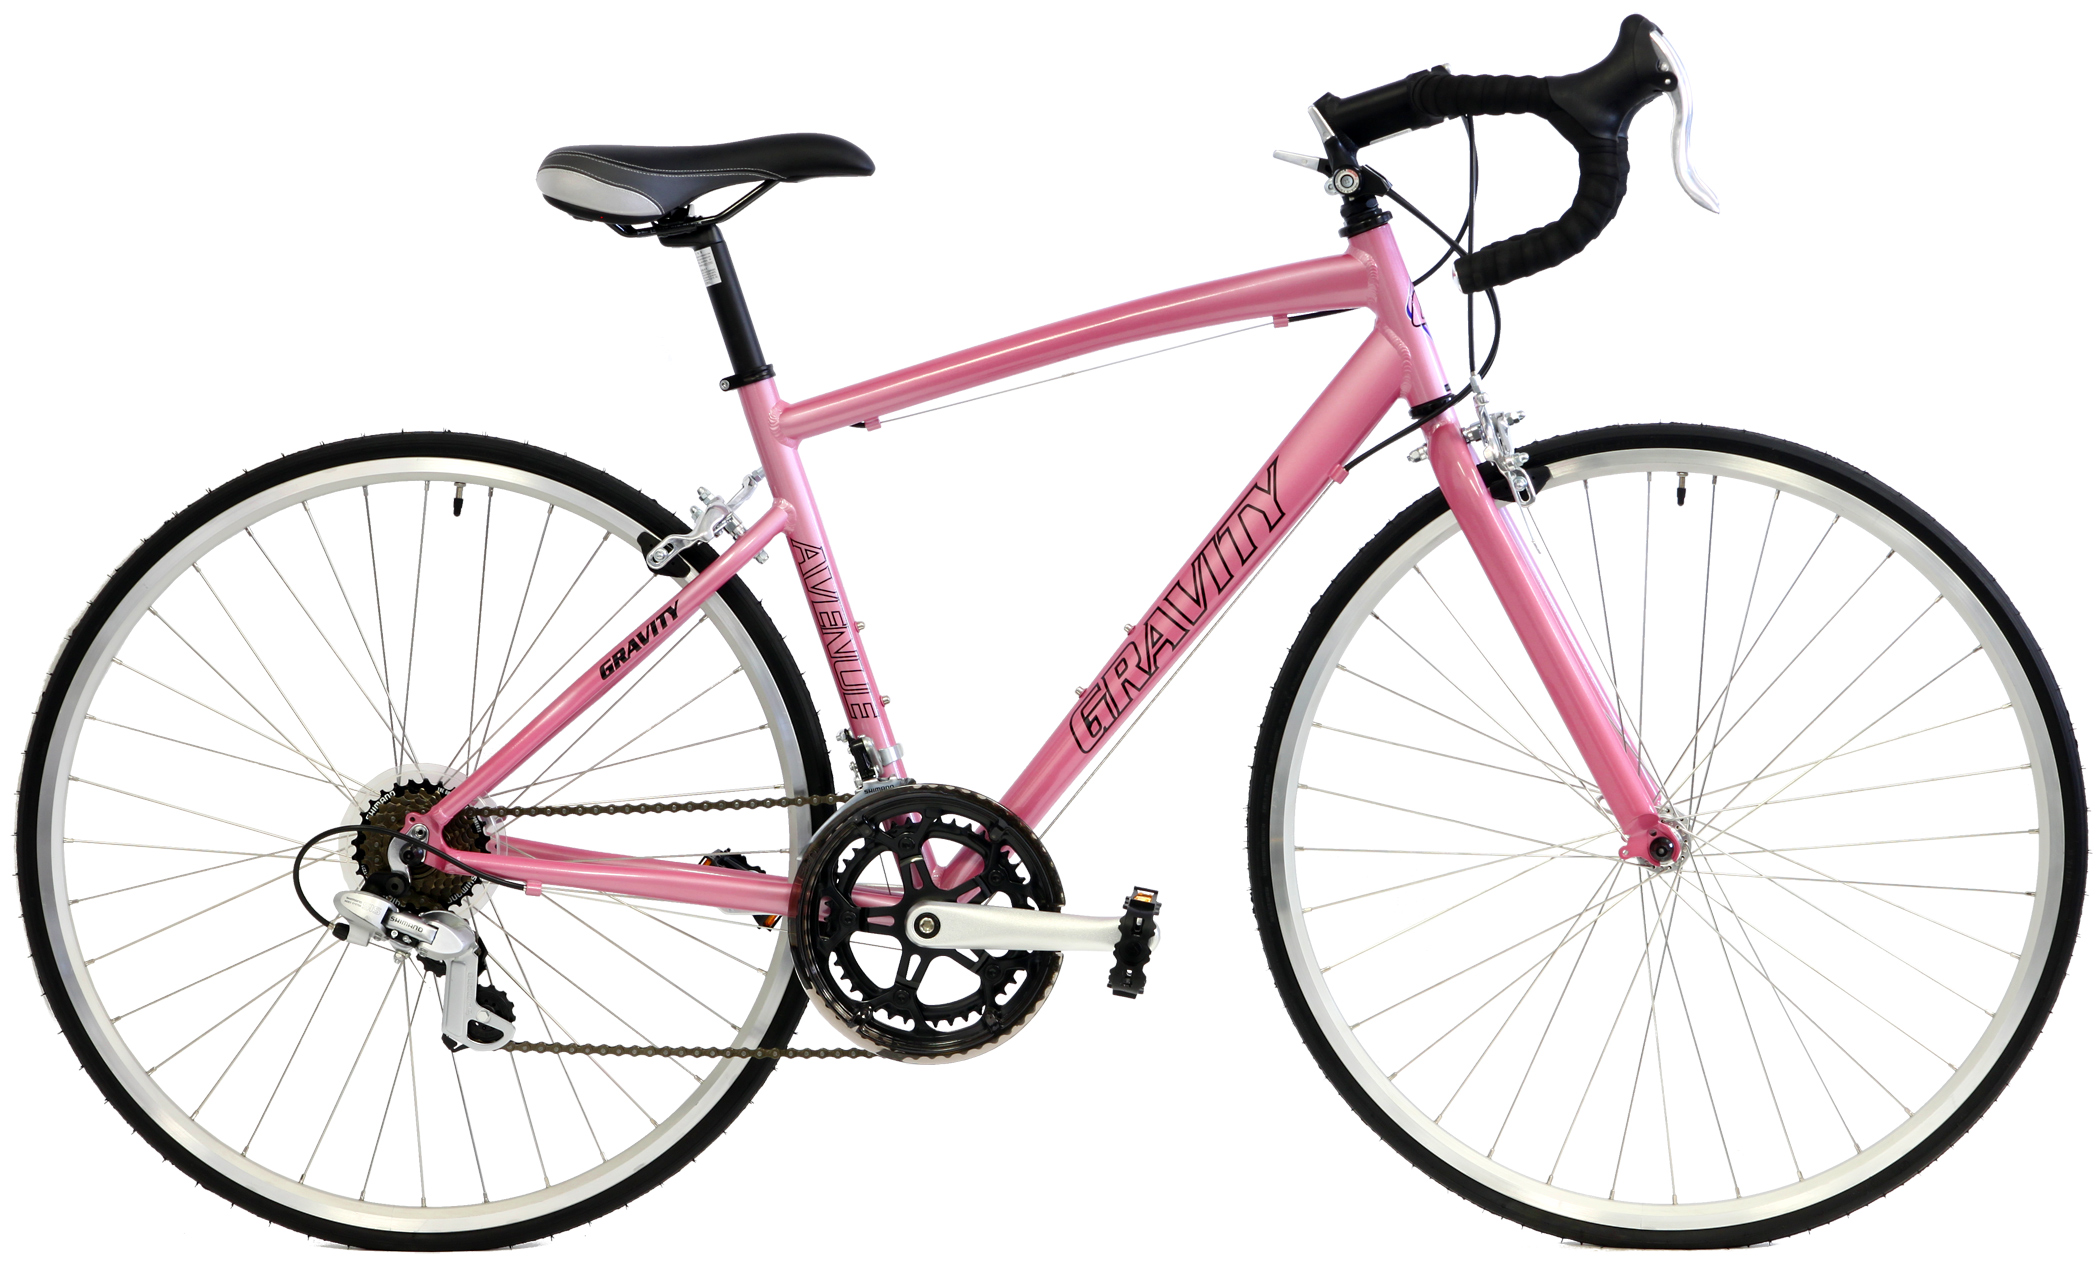 2100x1262 Save Up To 60% Off New Road Bikes